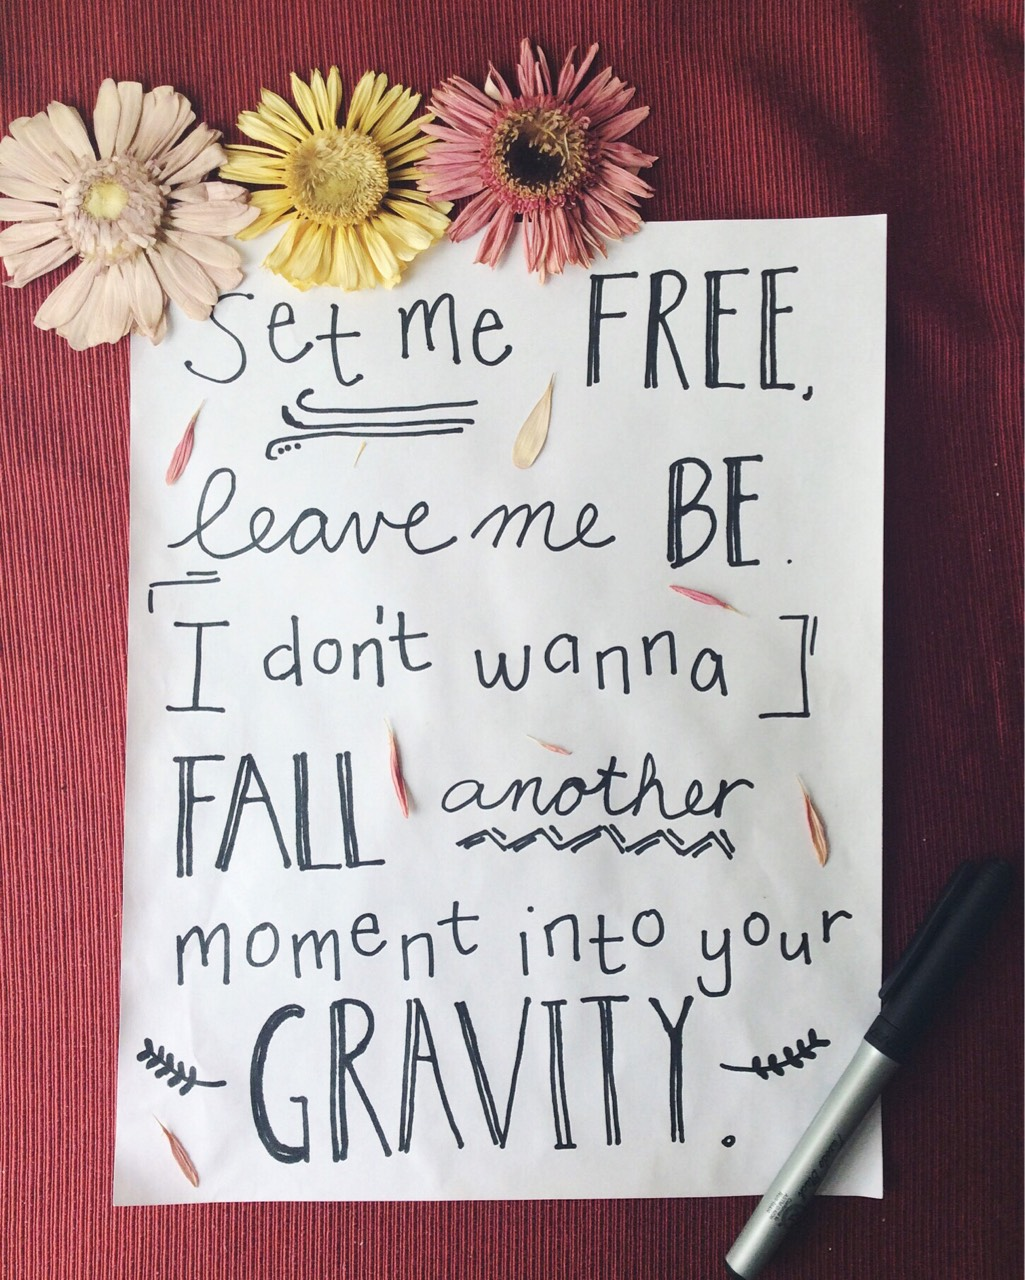 gravity sara bareilles lyrics